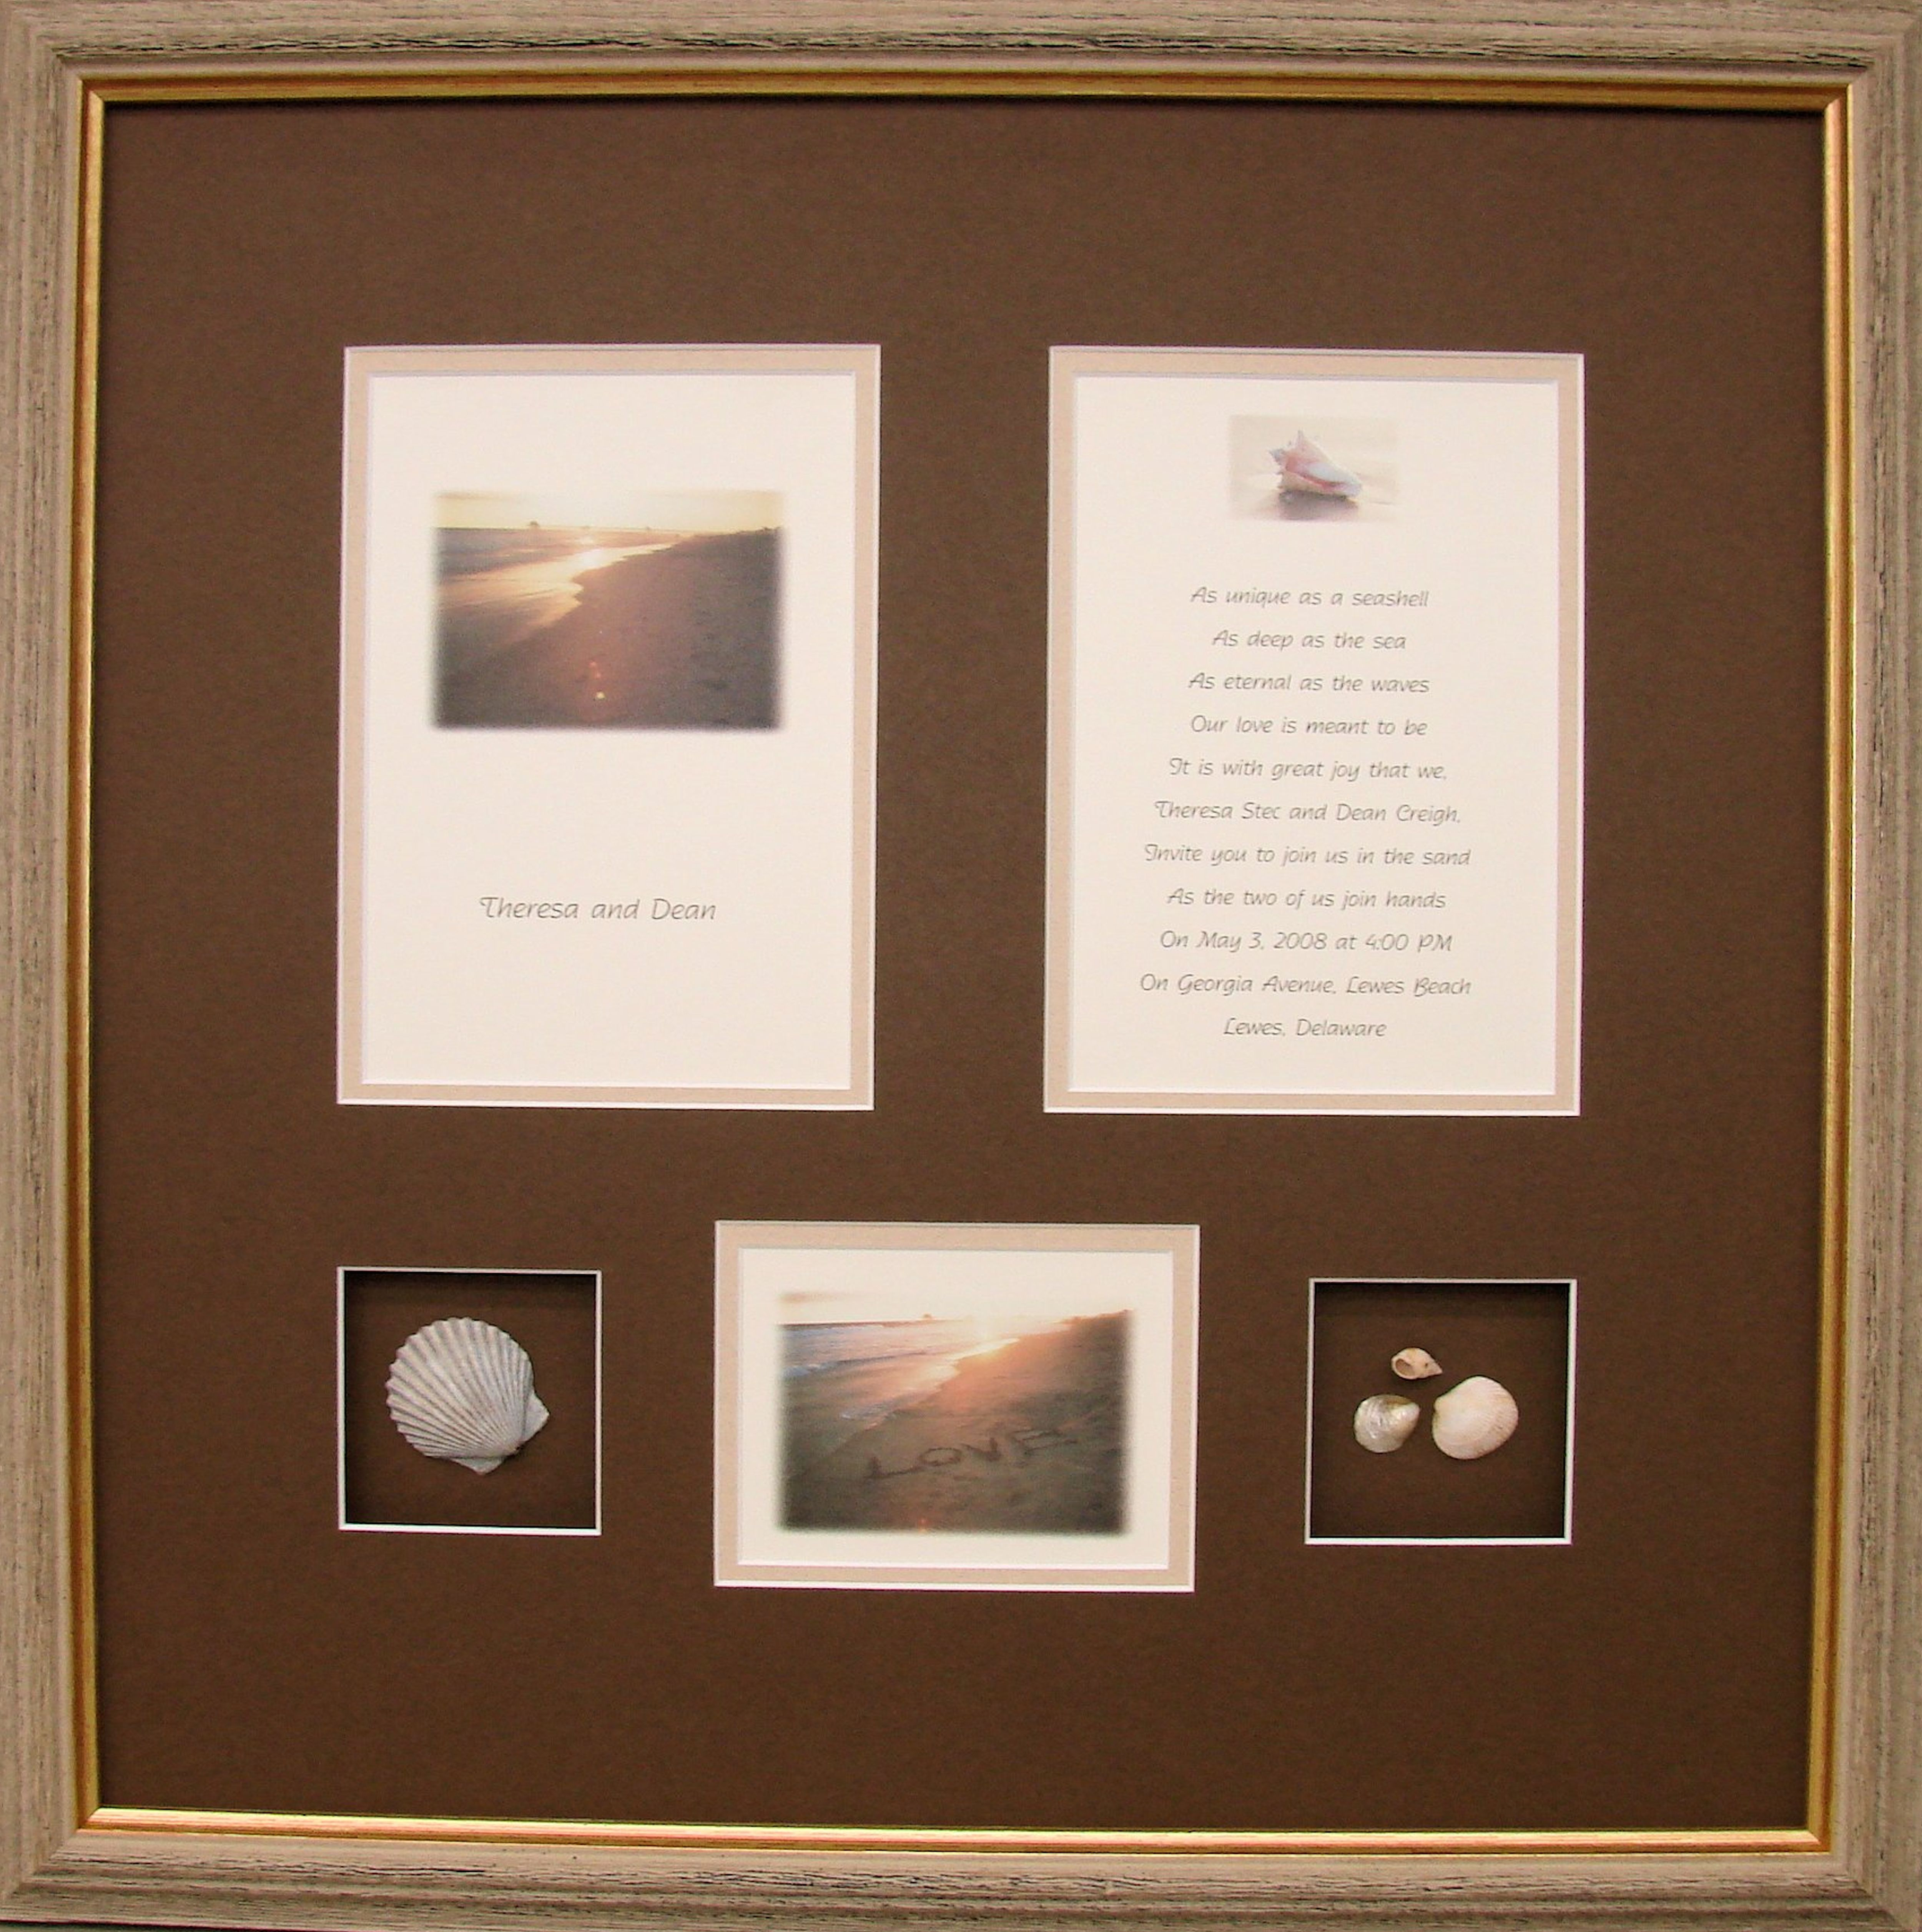 Wedding invitation? Frame it with mementos from the event as a gift for the newlyweds.